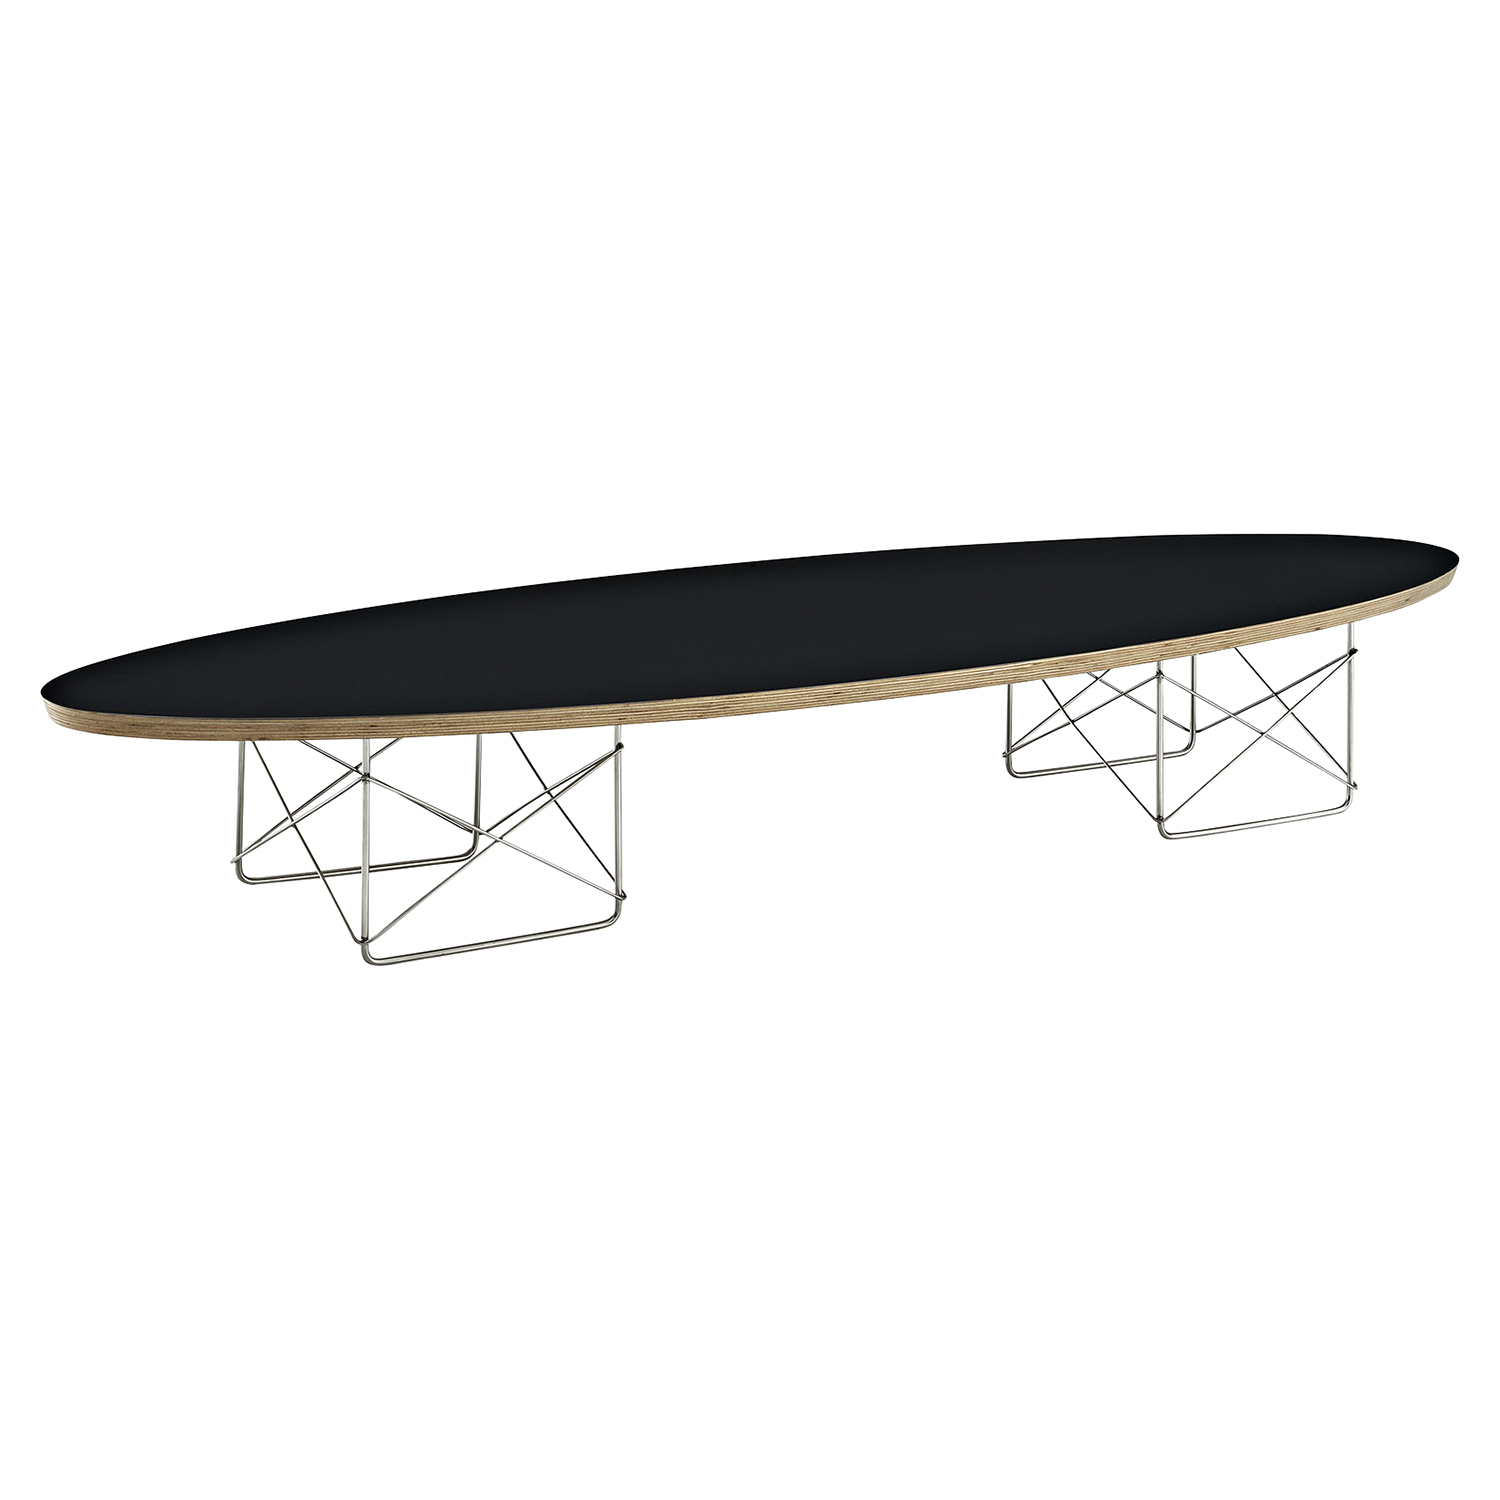 Surfboard Oval Coffee Table - Black